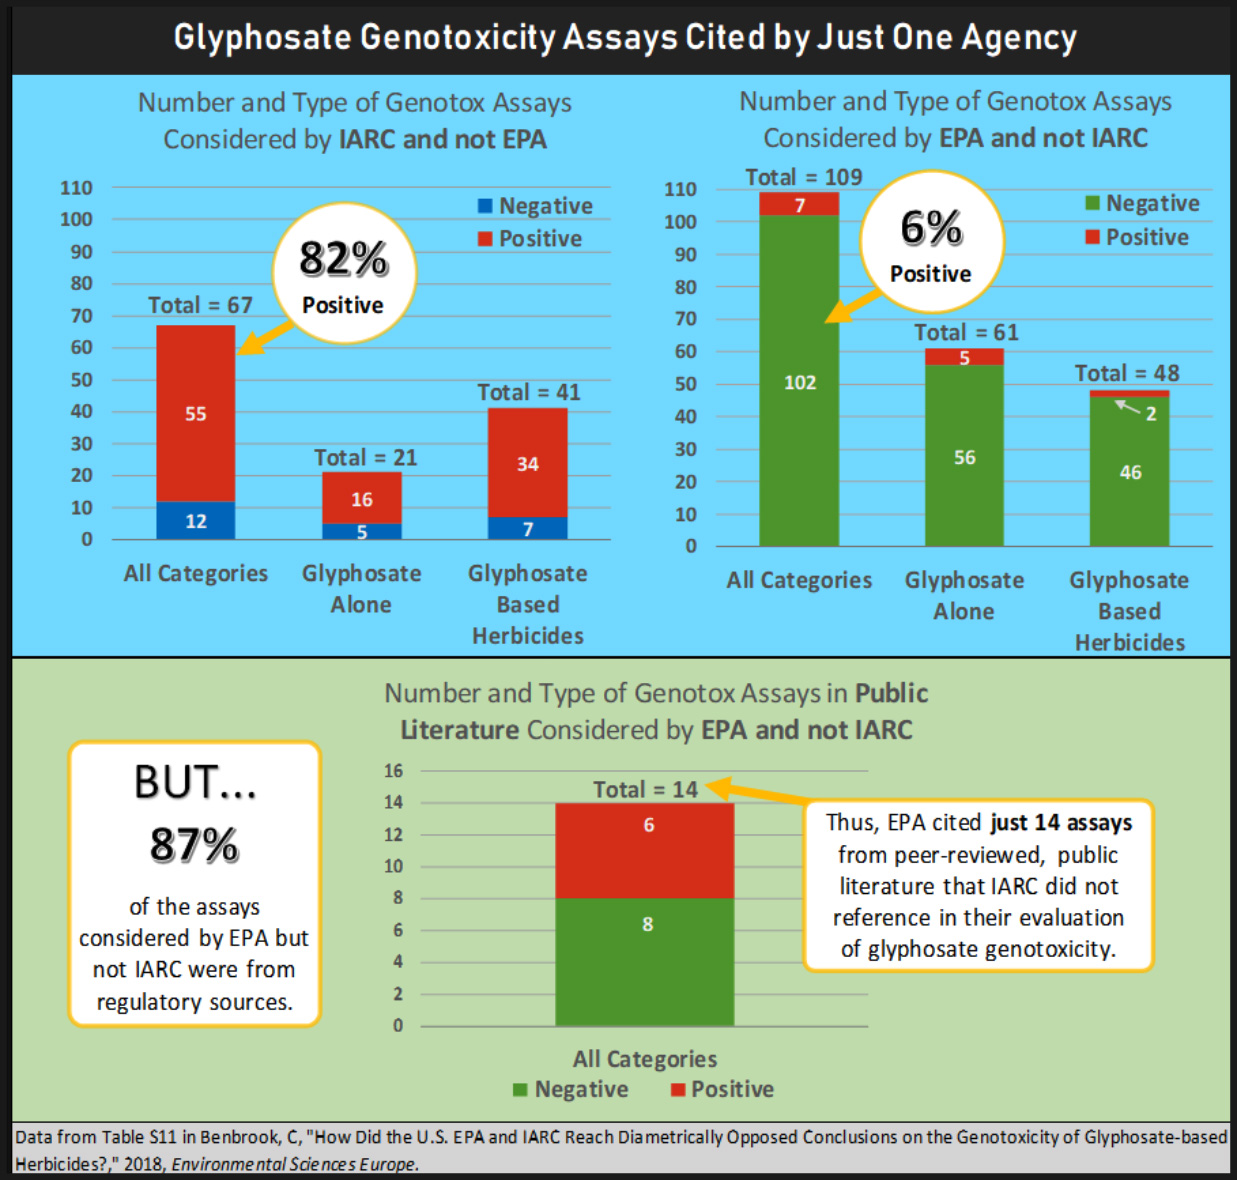 Glyphosate Genotoxicity Assay cited by just one agency